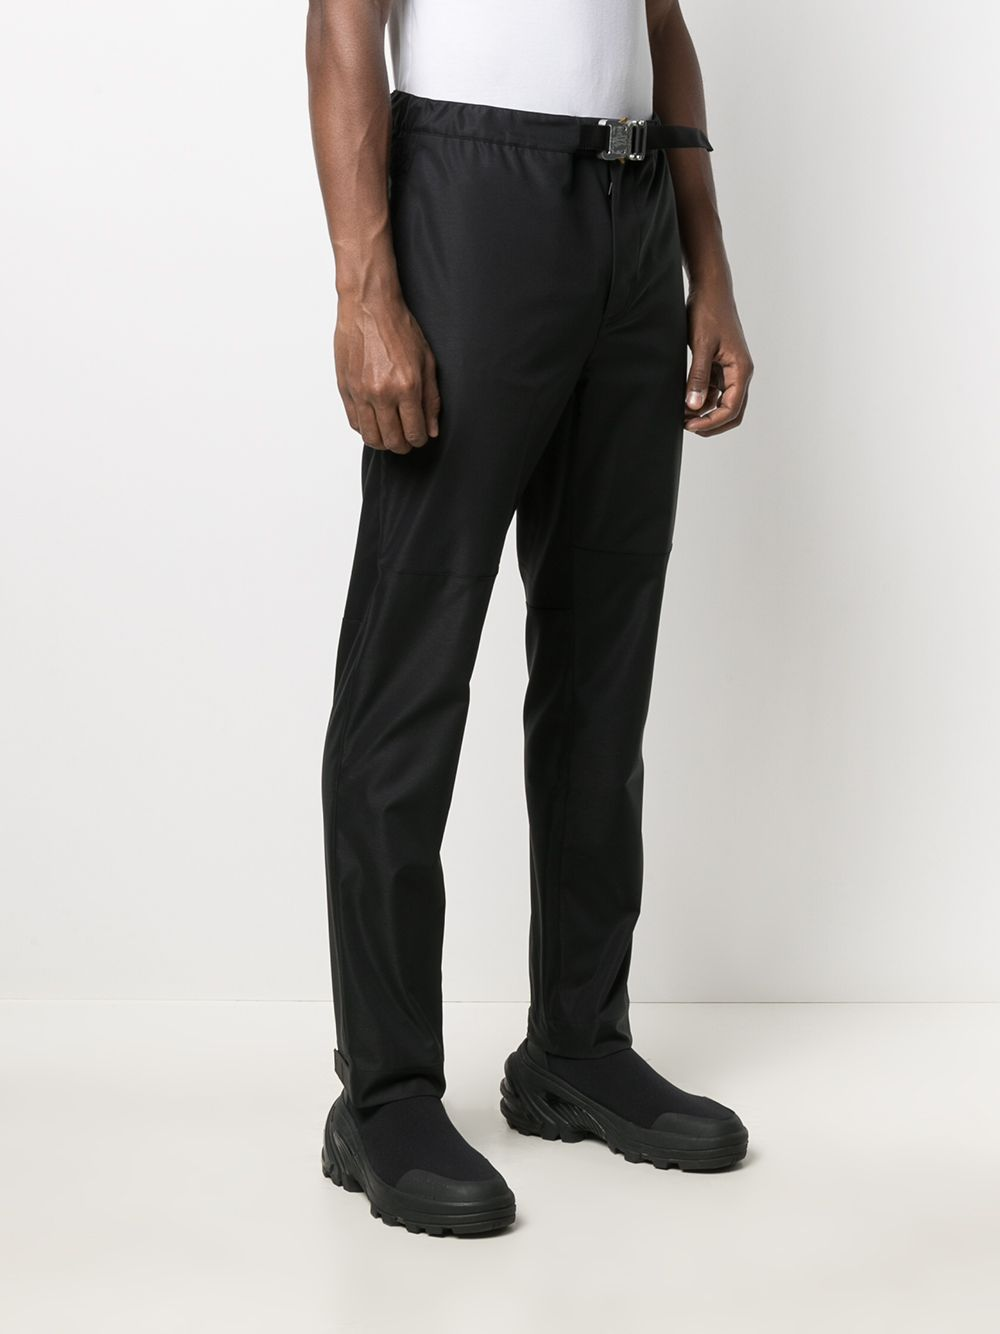 Black straight-leg trousers Moncler Genius featuring buckle fastening MONCLER GENIUS |  | 2A701-00-54AD1999